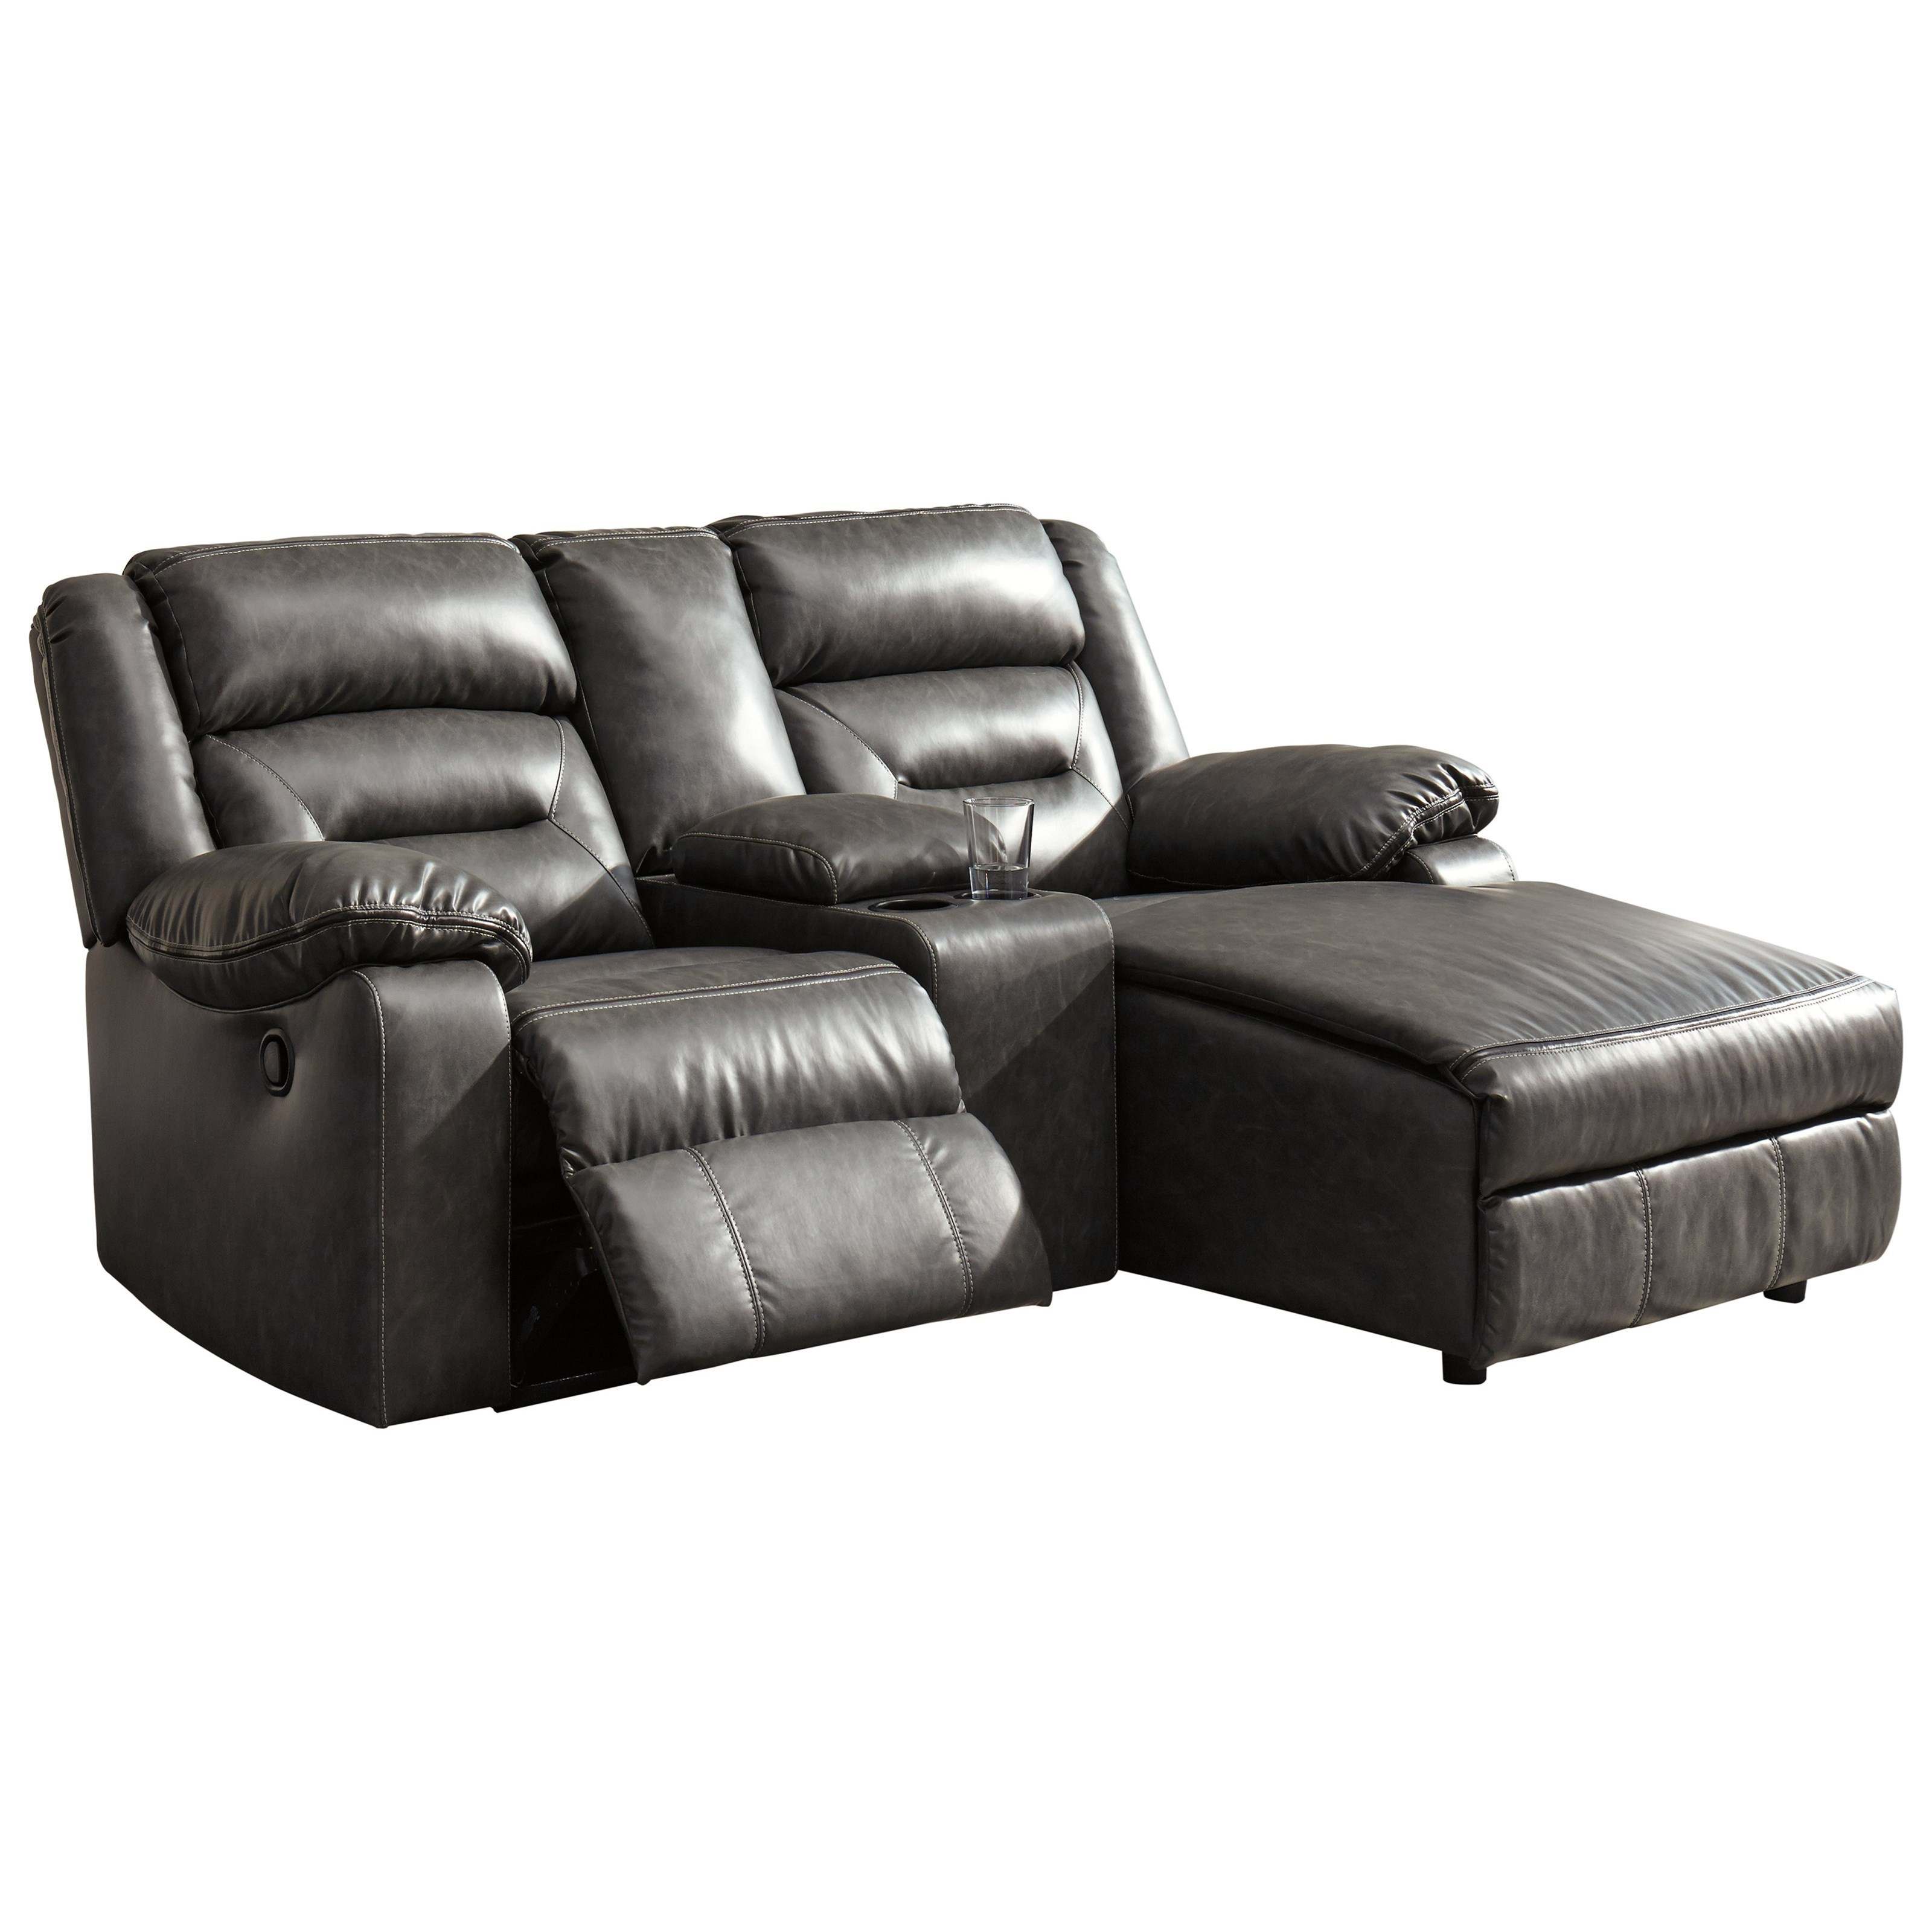 Signature Design By Ashley Coahoma Three Piece Sectional Sofa With